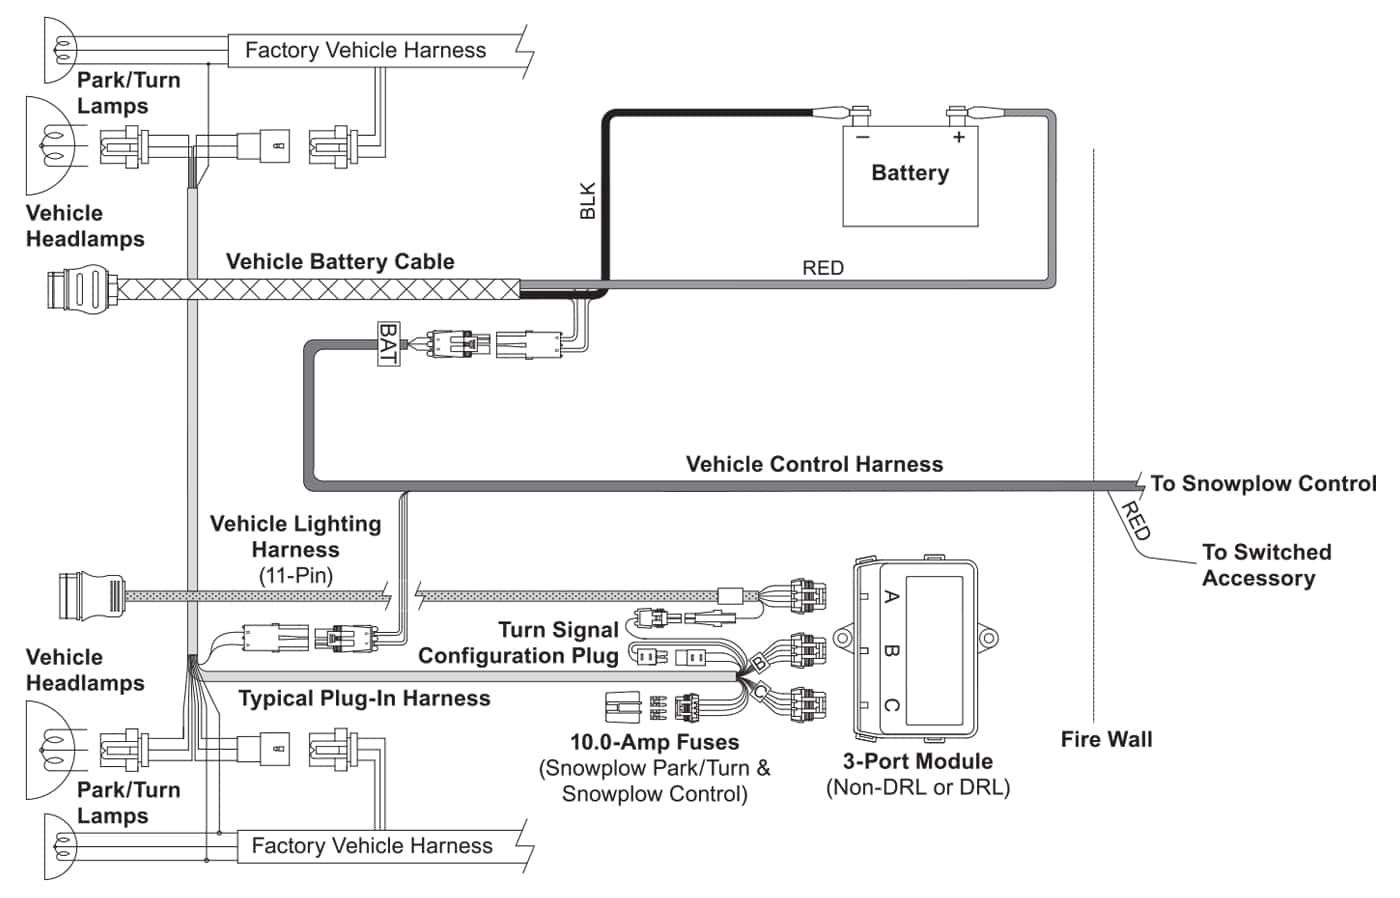 HD Series Vehicle-Side Harness Diagram